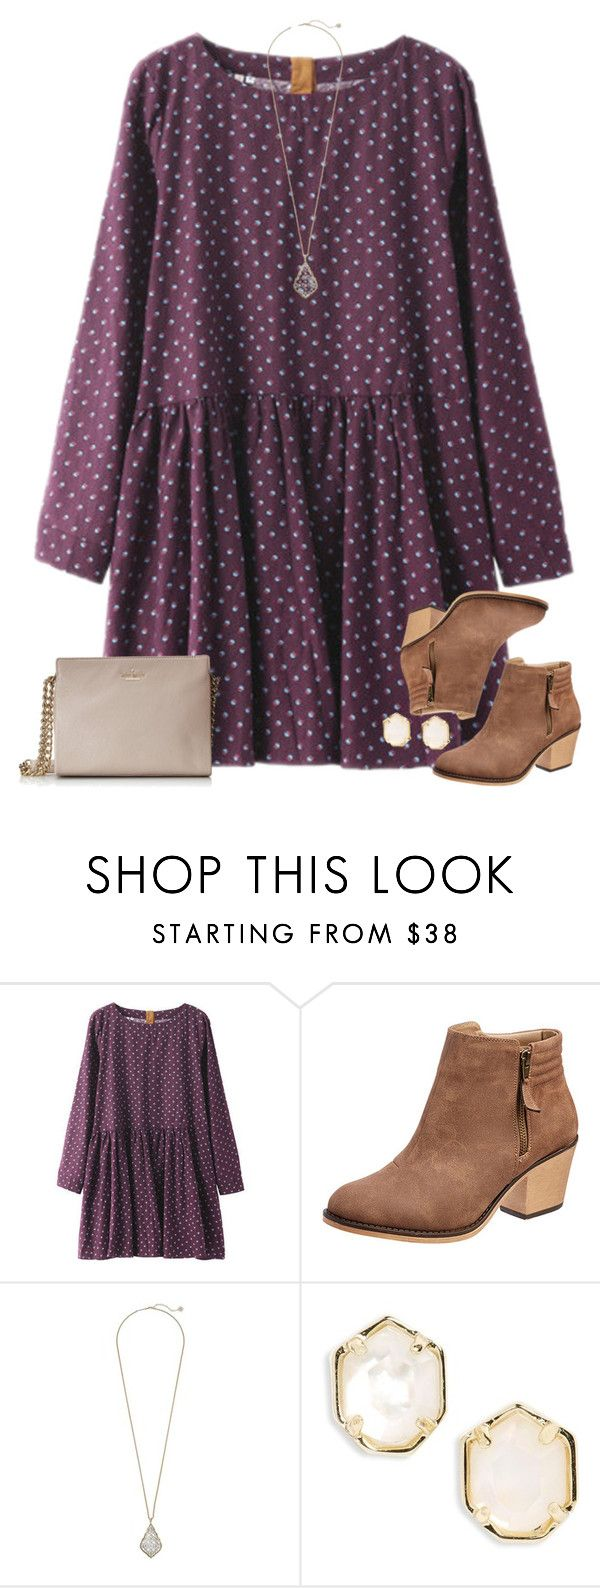 """Watching The Voice"" by classyandsassyabby ❤ liked on Polyvore featuring Kendra Scott, Kate Spade, PolkaDots, booties and kendrascott"